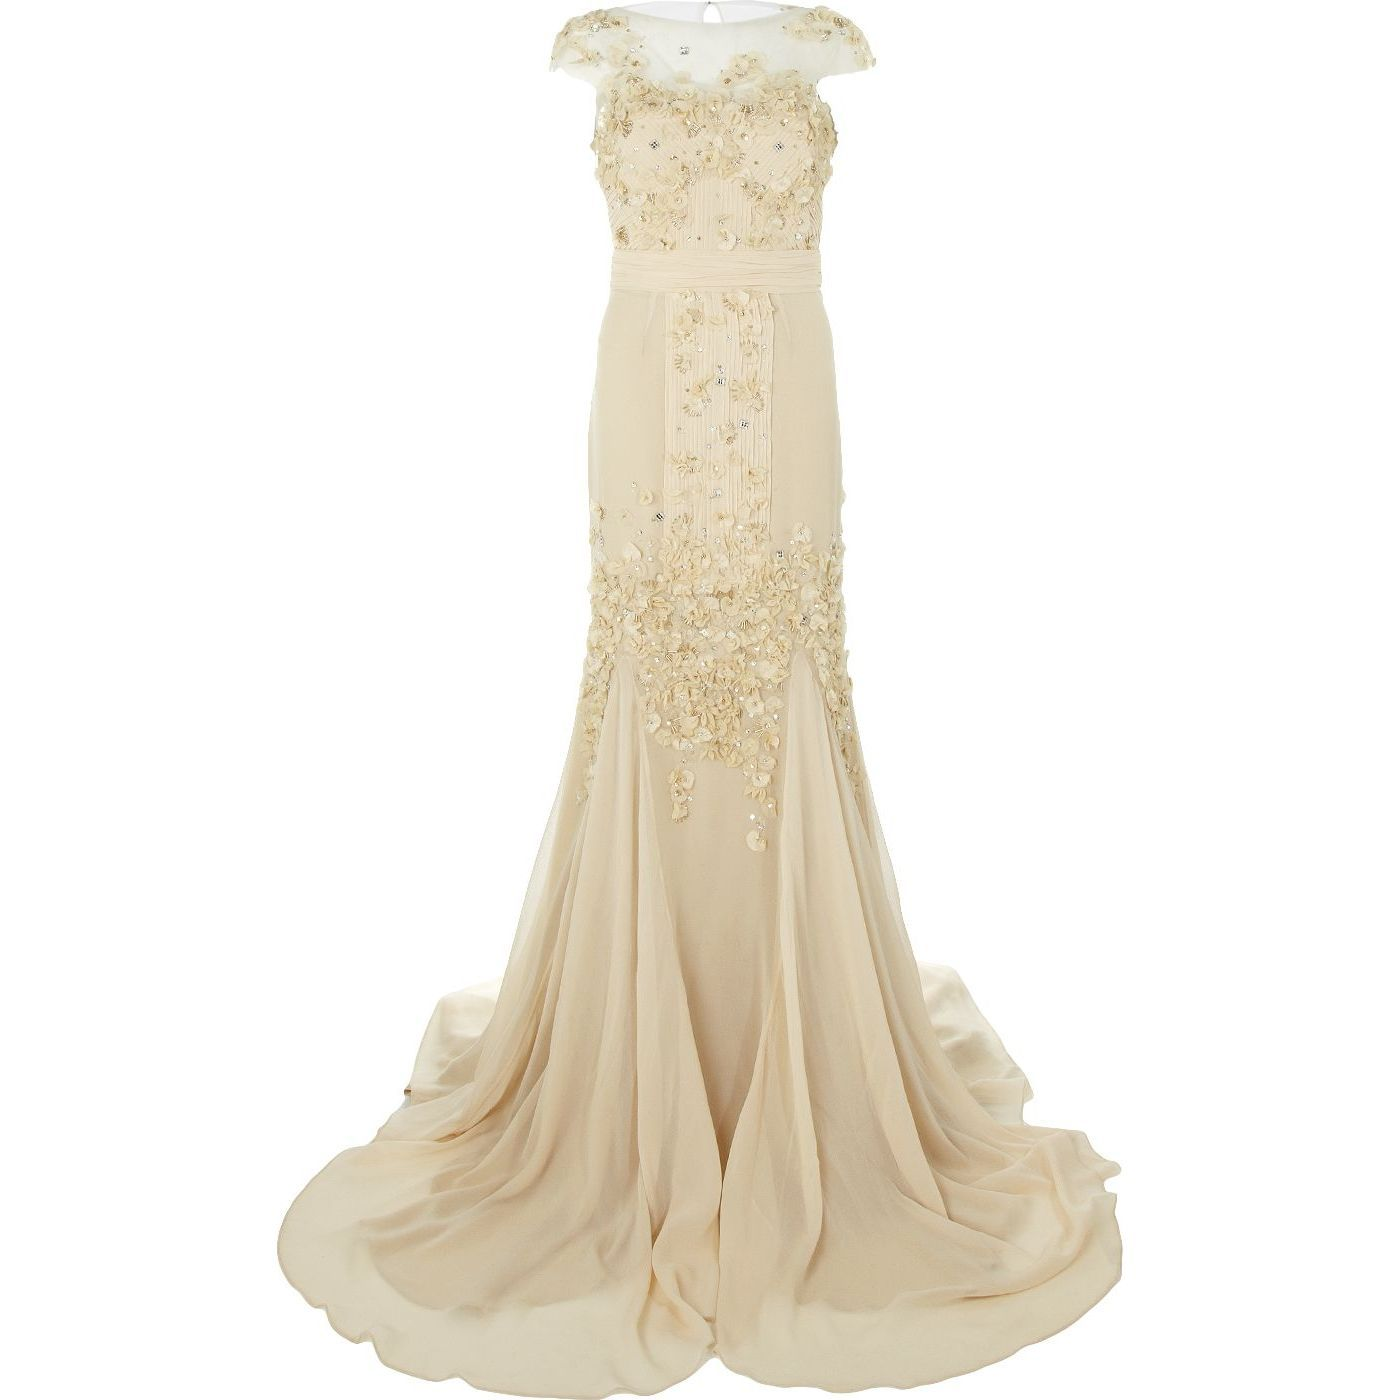 We think this embellished gown by badgley mischka from harrods on